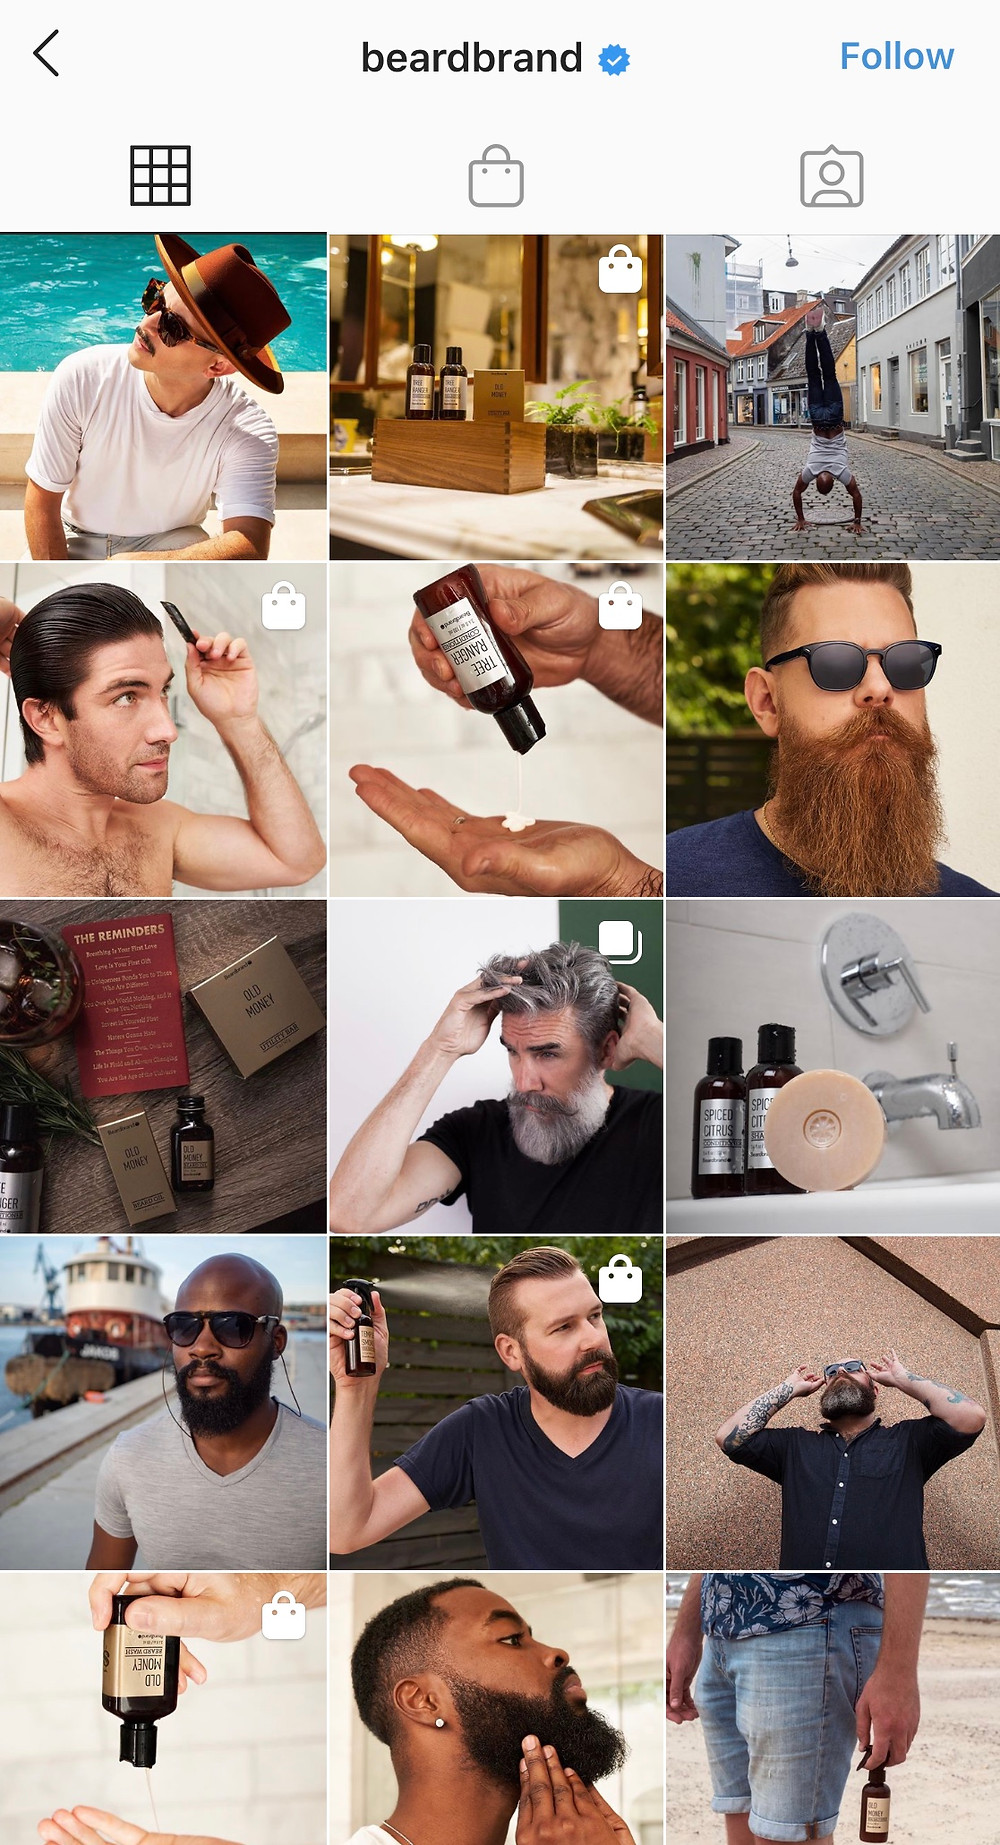 Beardbrand's feed shows off the fruits of their products labor in a fun way that gets the community involved.